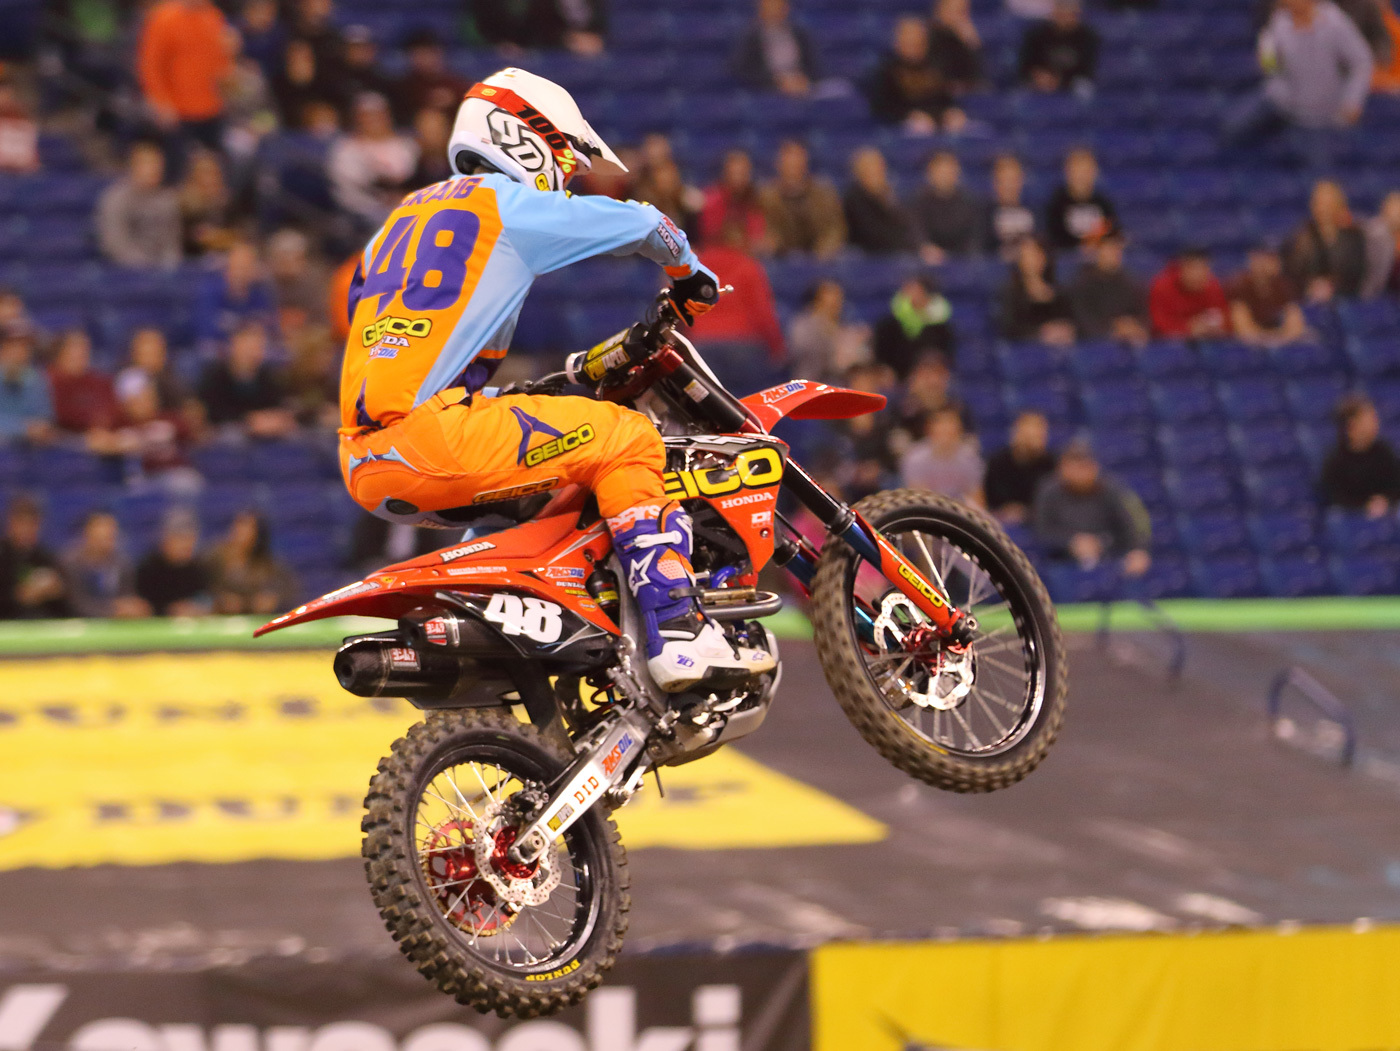 2017 Monster Energy Supercross Indianapolice_d0091546_08395807.jpg